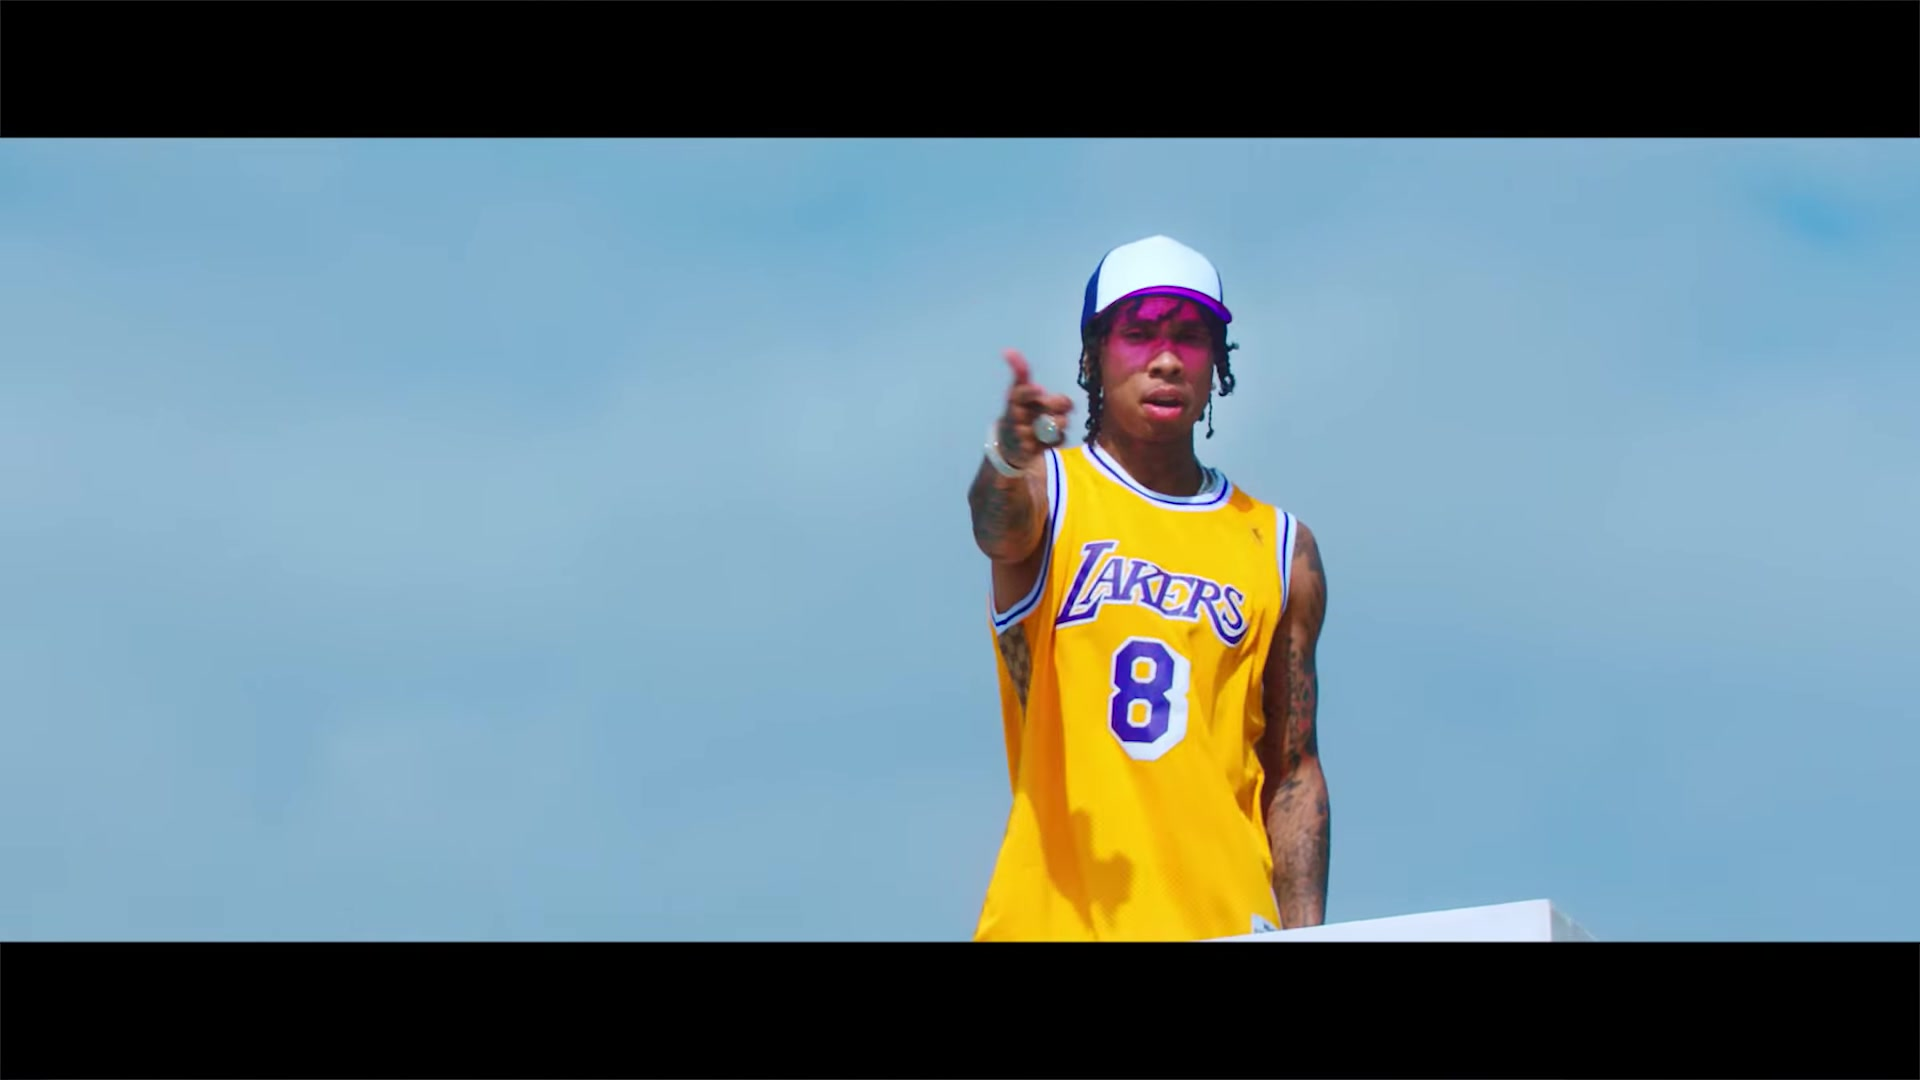 Lakers Jersey In Quottastequot By Tyga Ft Offset 2018